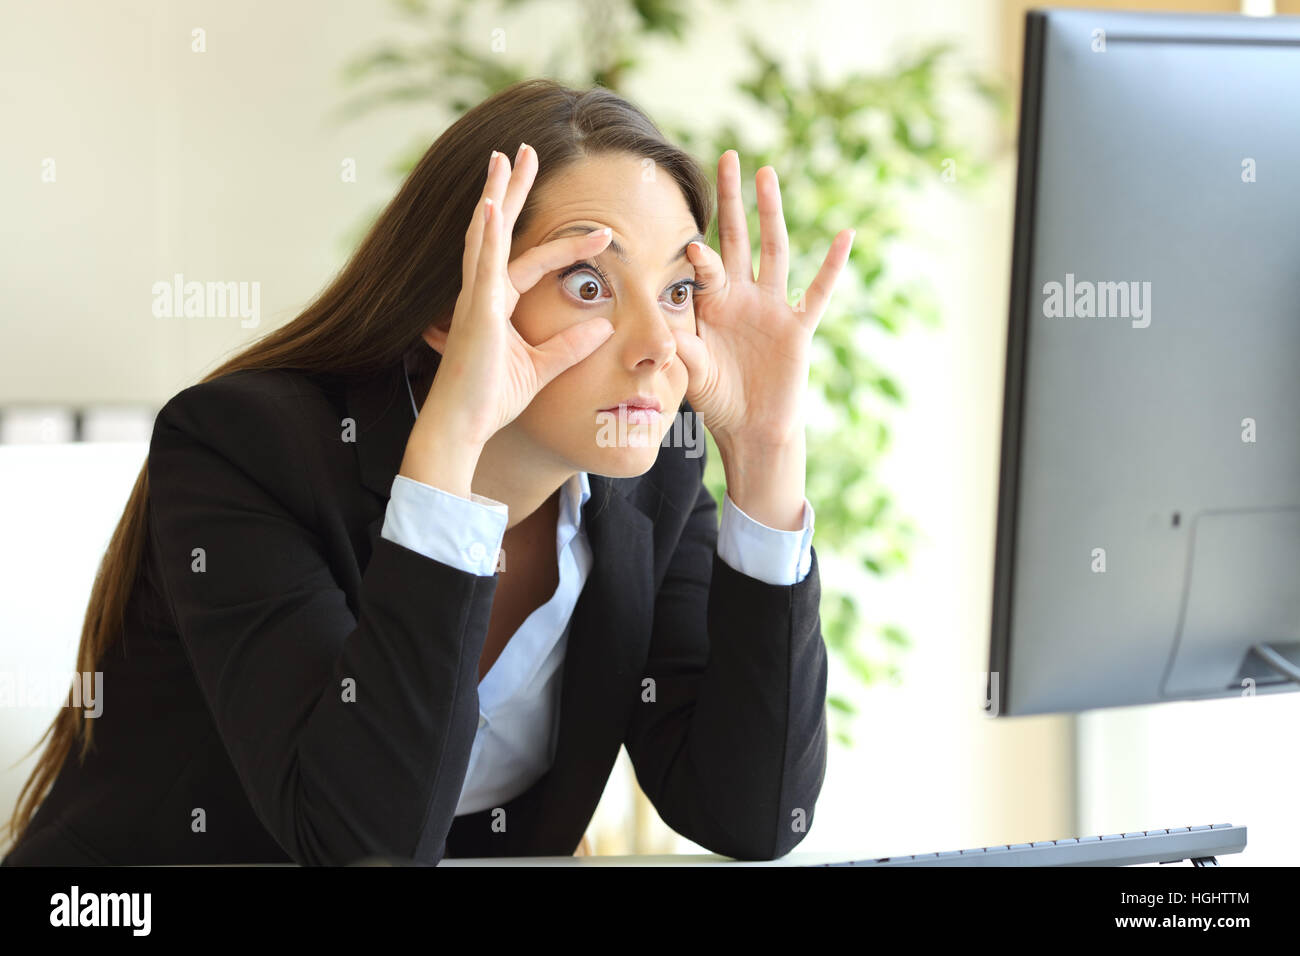 Sleepy businesswoman trying to stay awake keeping the eyes opened with the fingers watching a desktop computer monitor - Stock Image